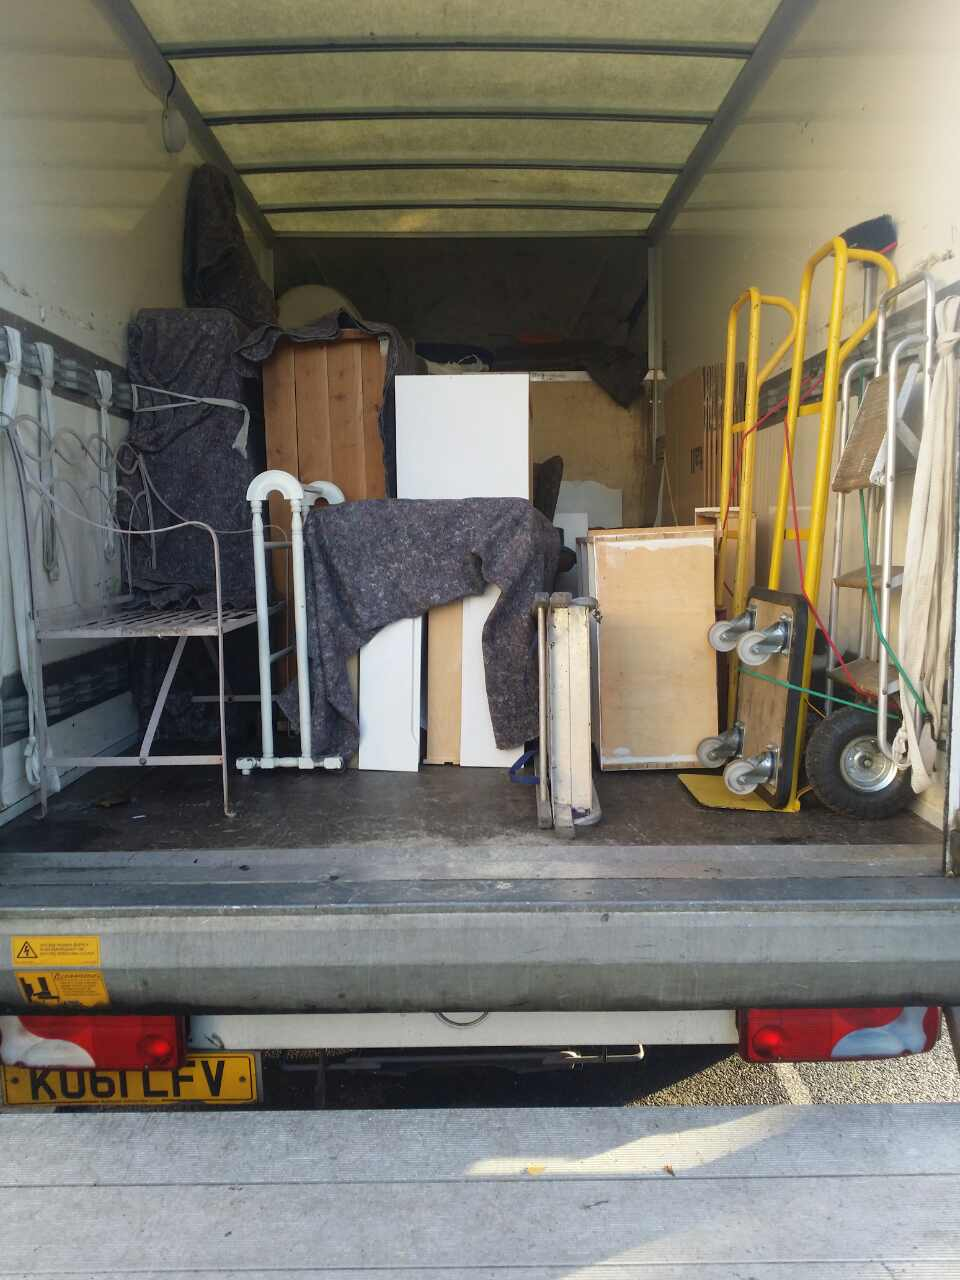 RM4 movers in Havering-atte-Bower